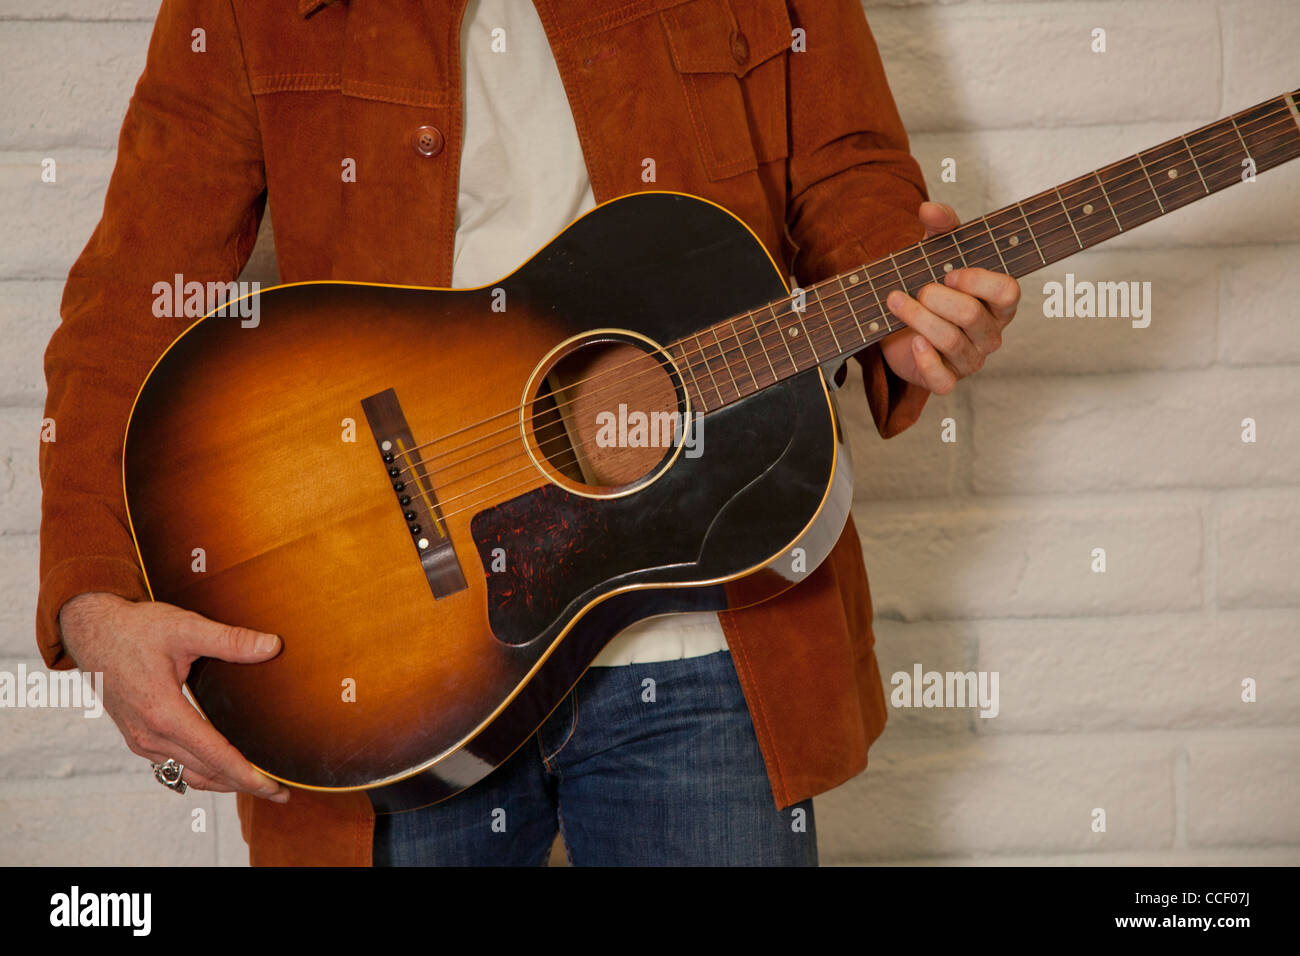 Close-up of mid adult man's torso holding guitar - Stock Image